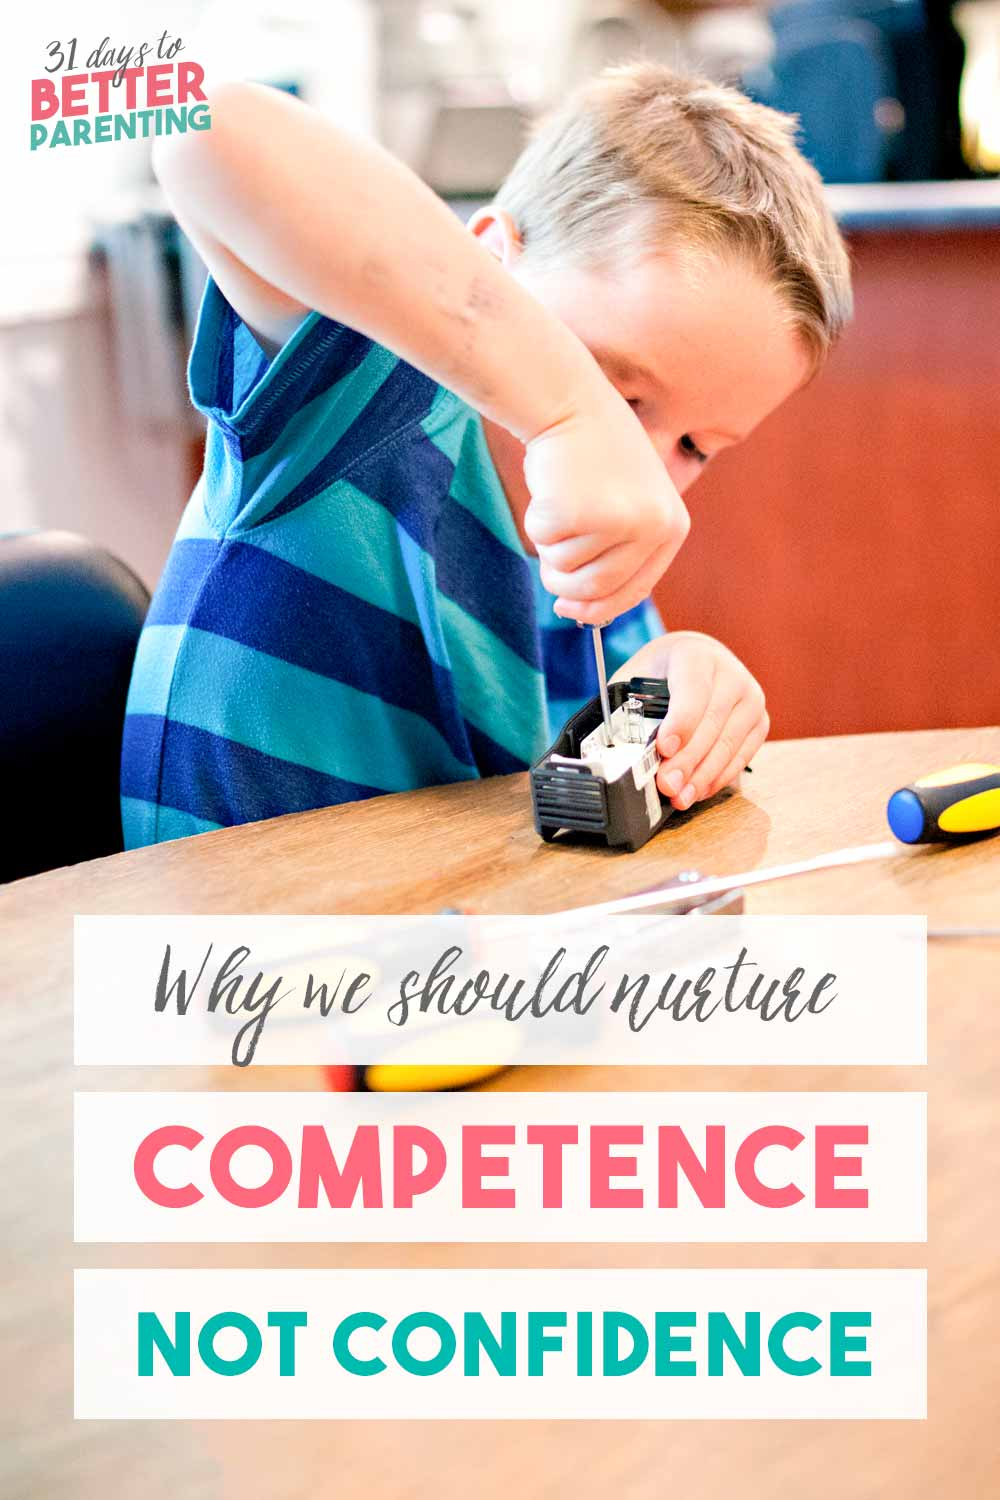 While confidence is important, competence is a better trait to nurture. Learn why you should encourage competence not confidence in children.